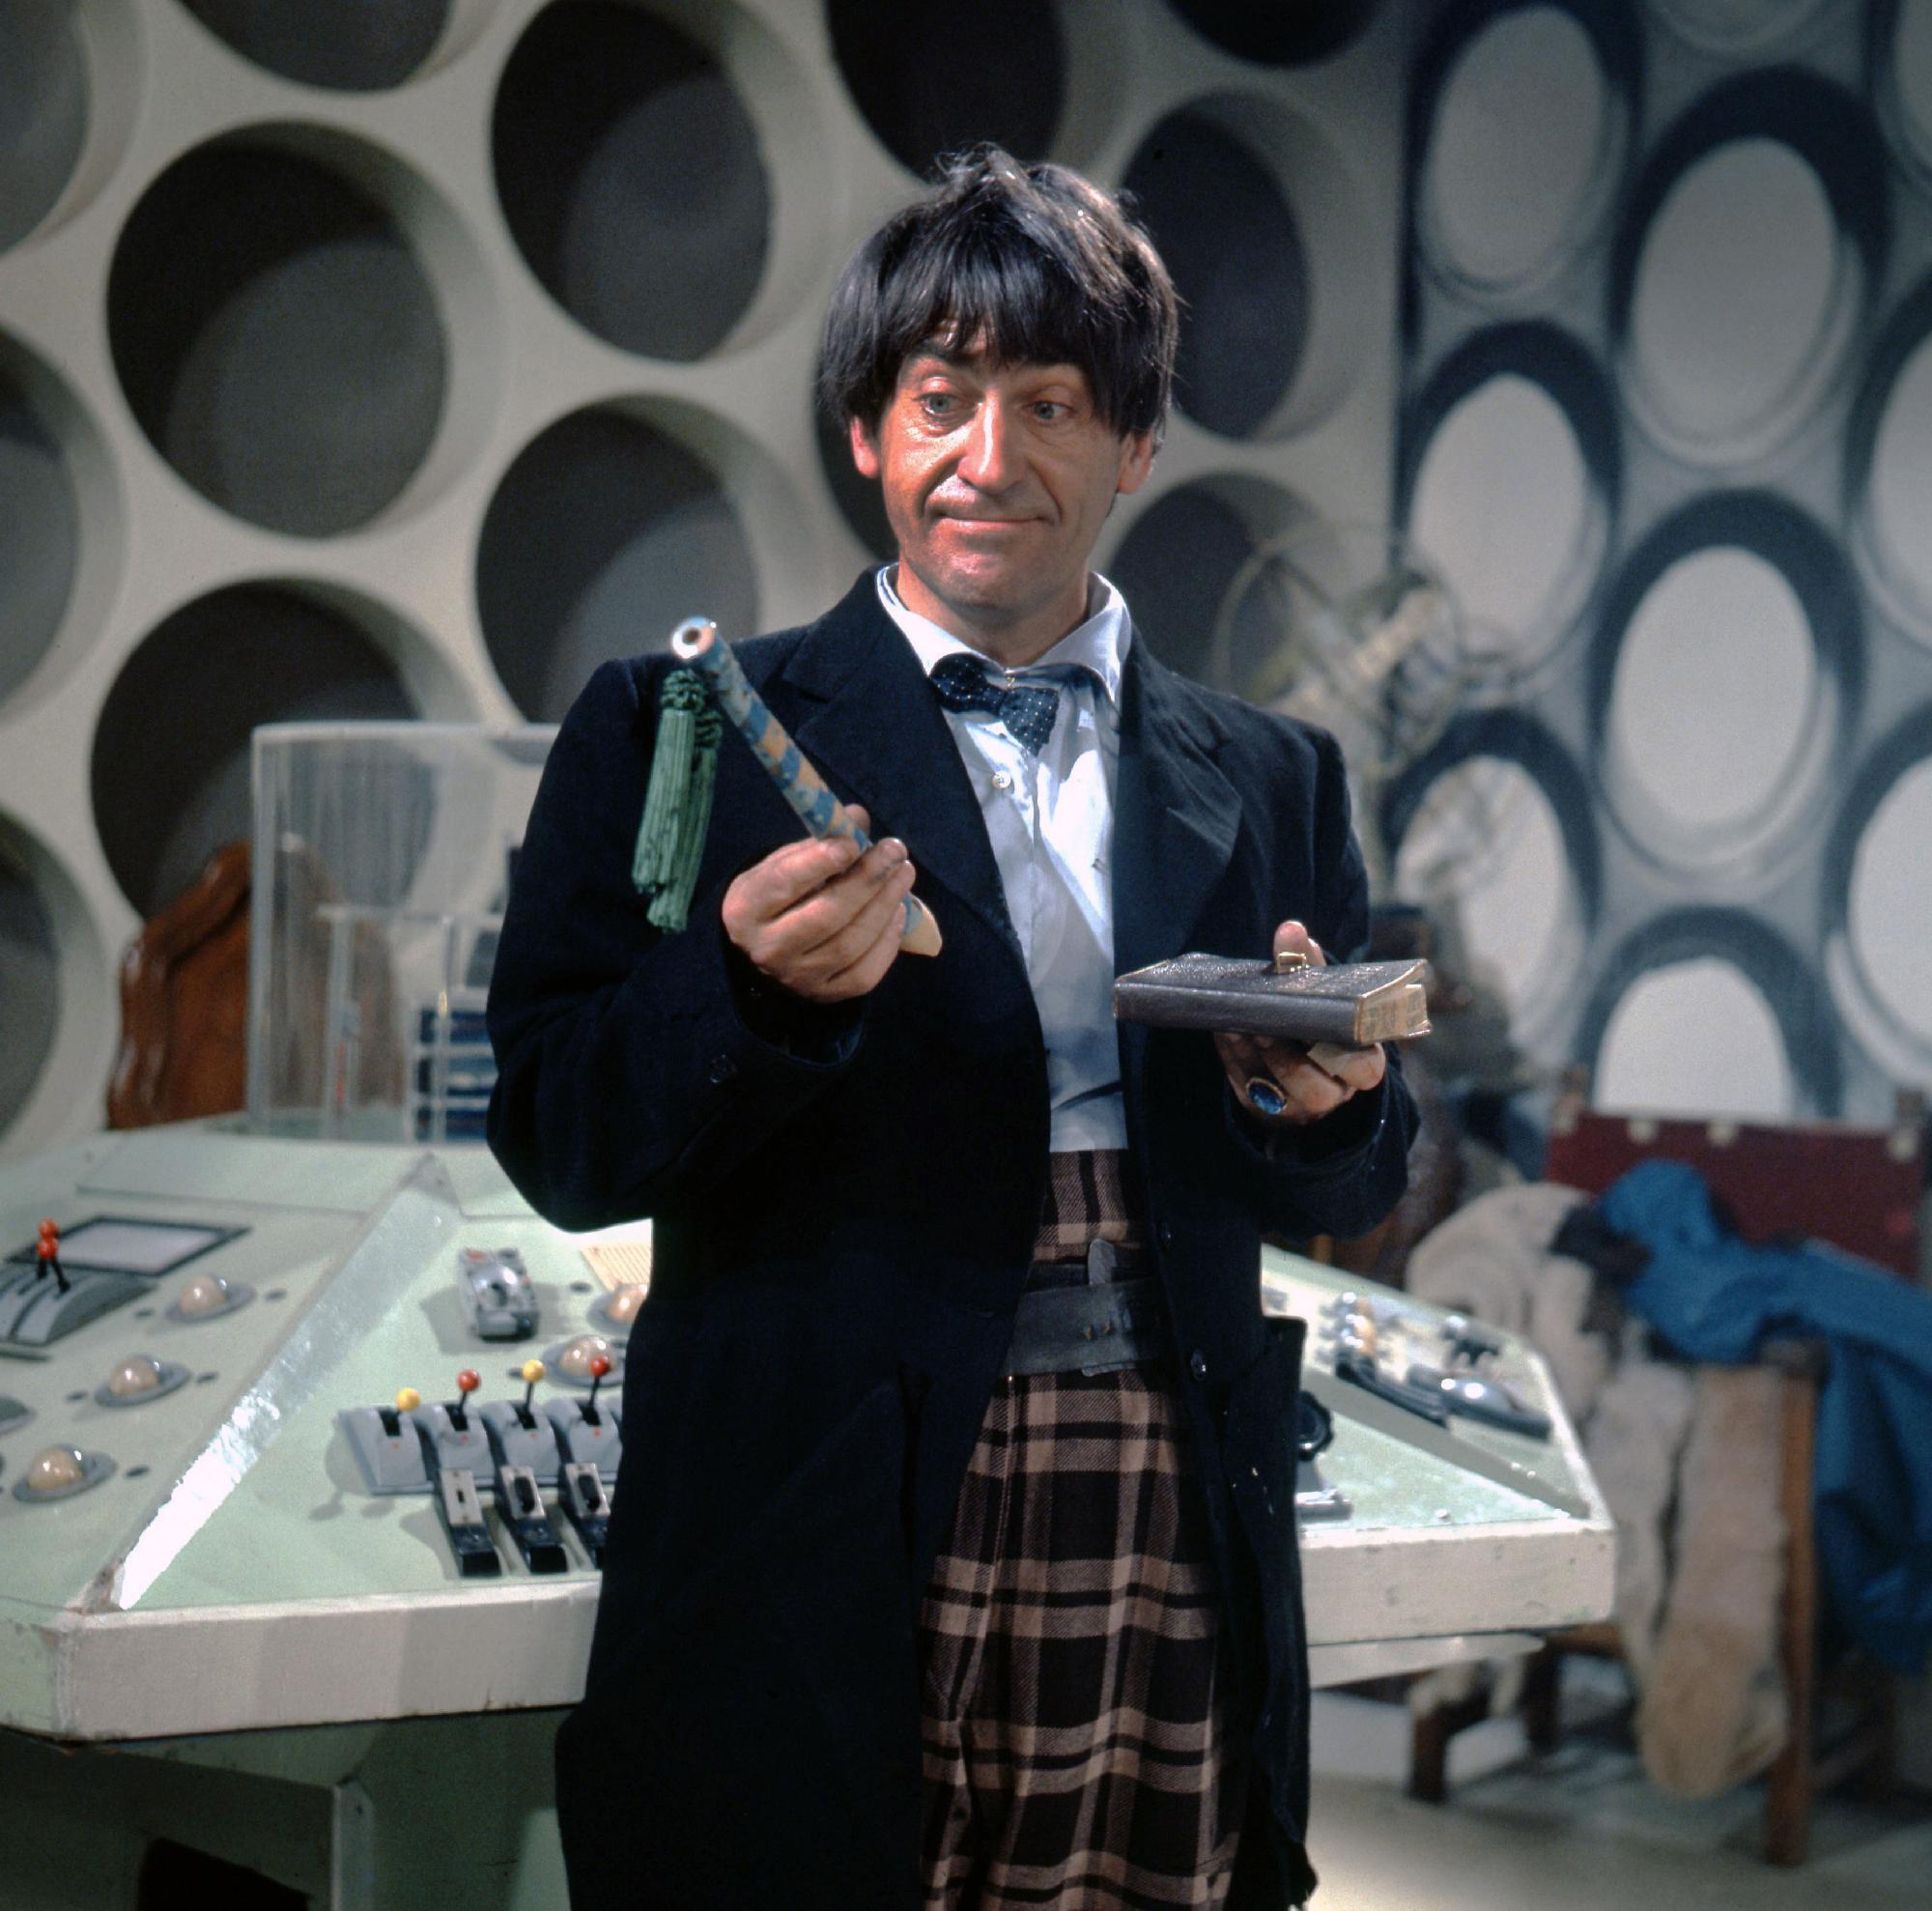 Patrick Troughton as Doctor Who (Credit: BBC)